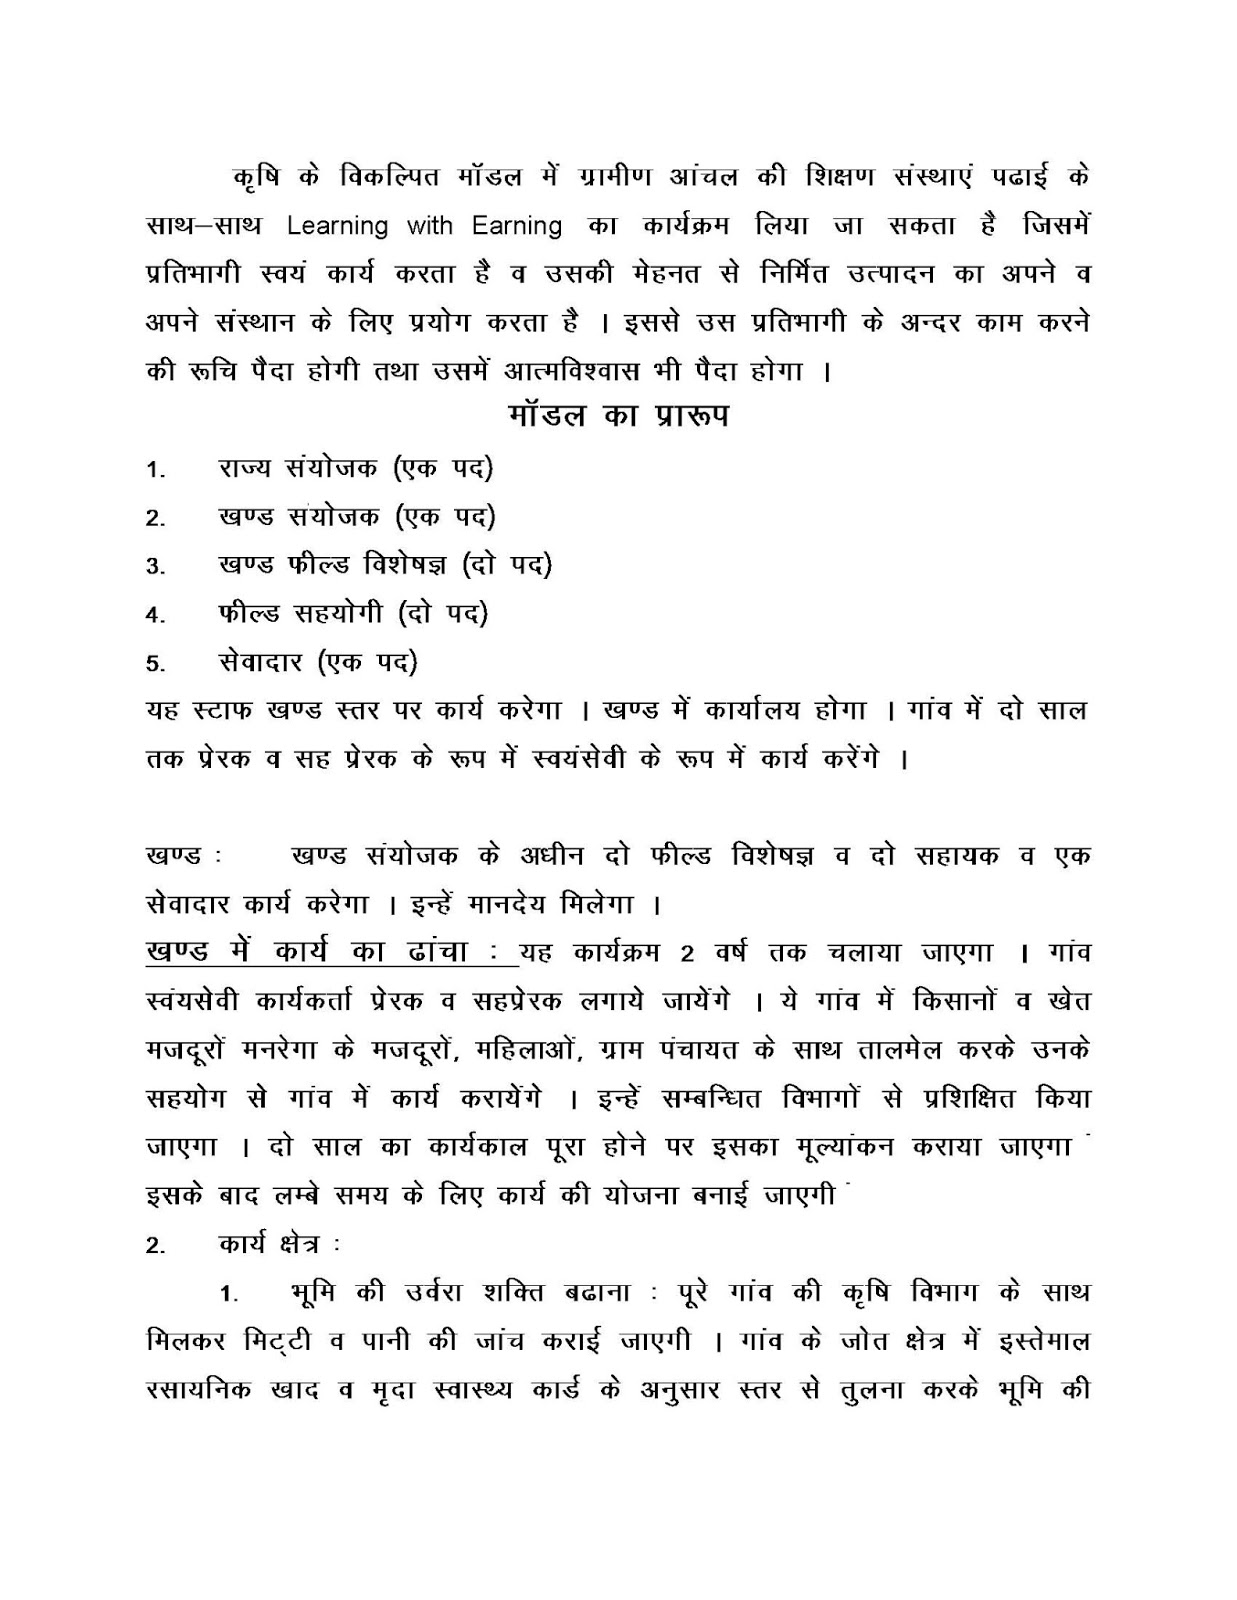 Online essay editor in hindi